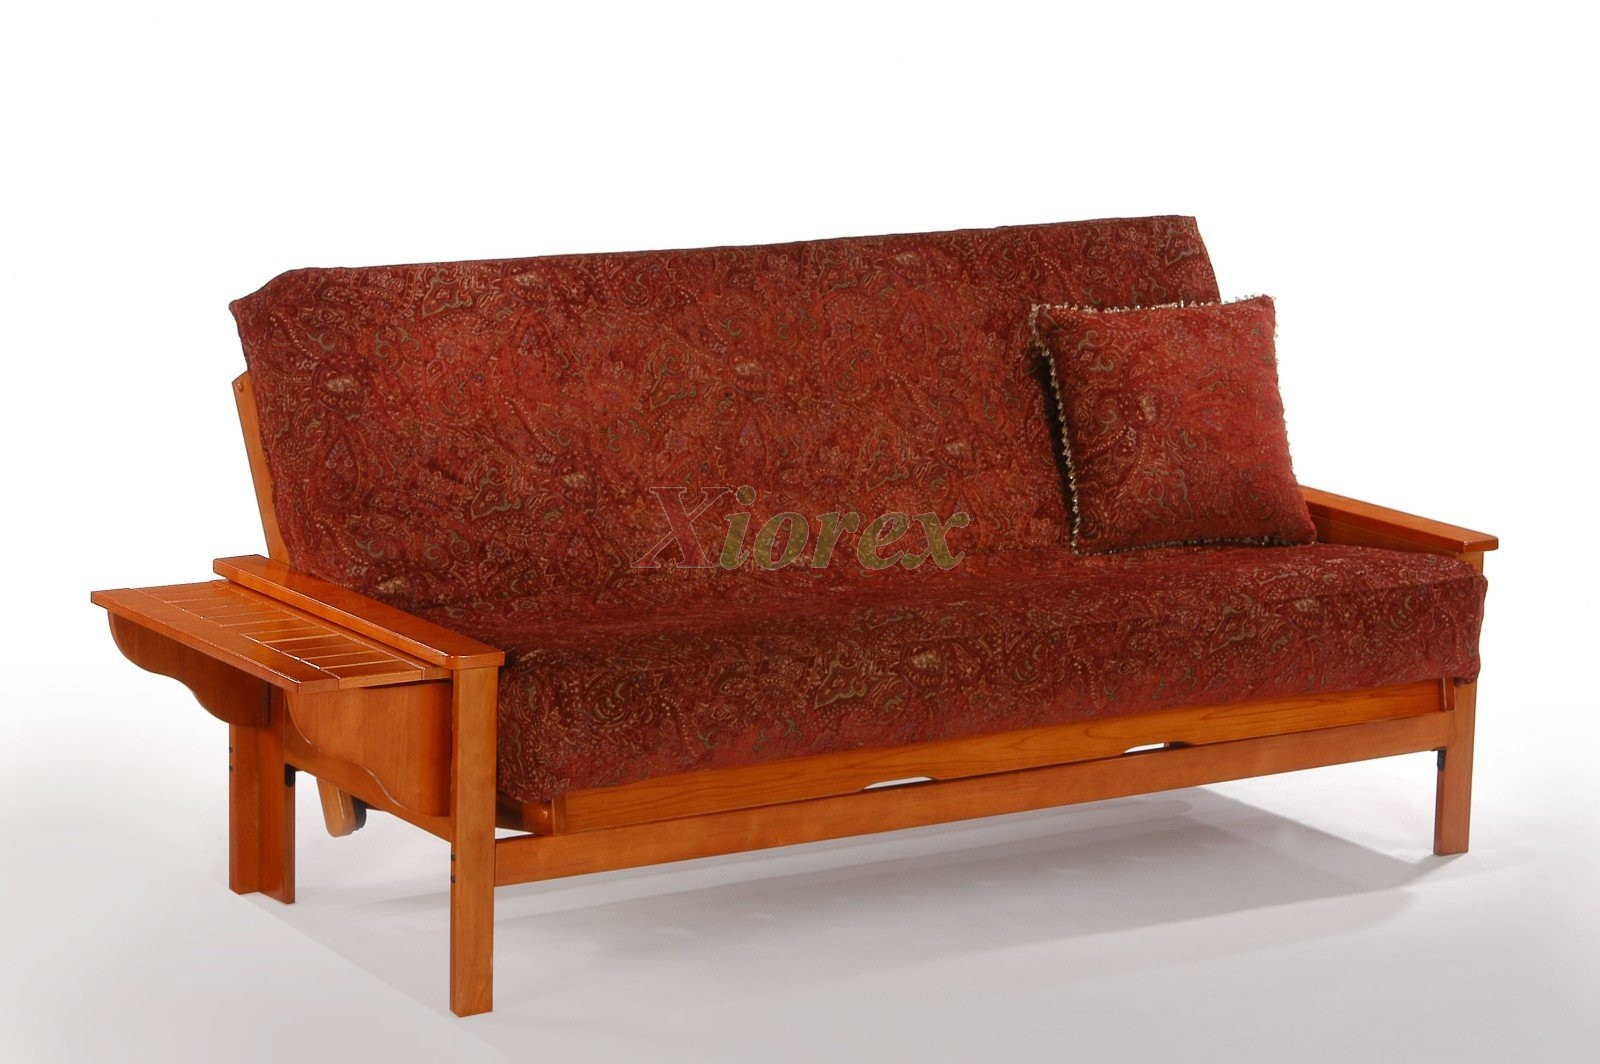 Genial Seattle Futon In Teak By Night And Day | Xiorex Futons Online